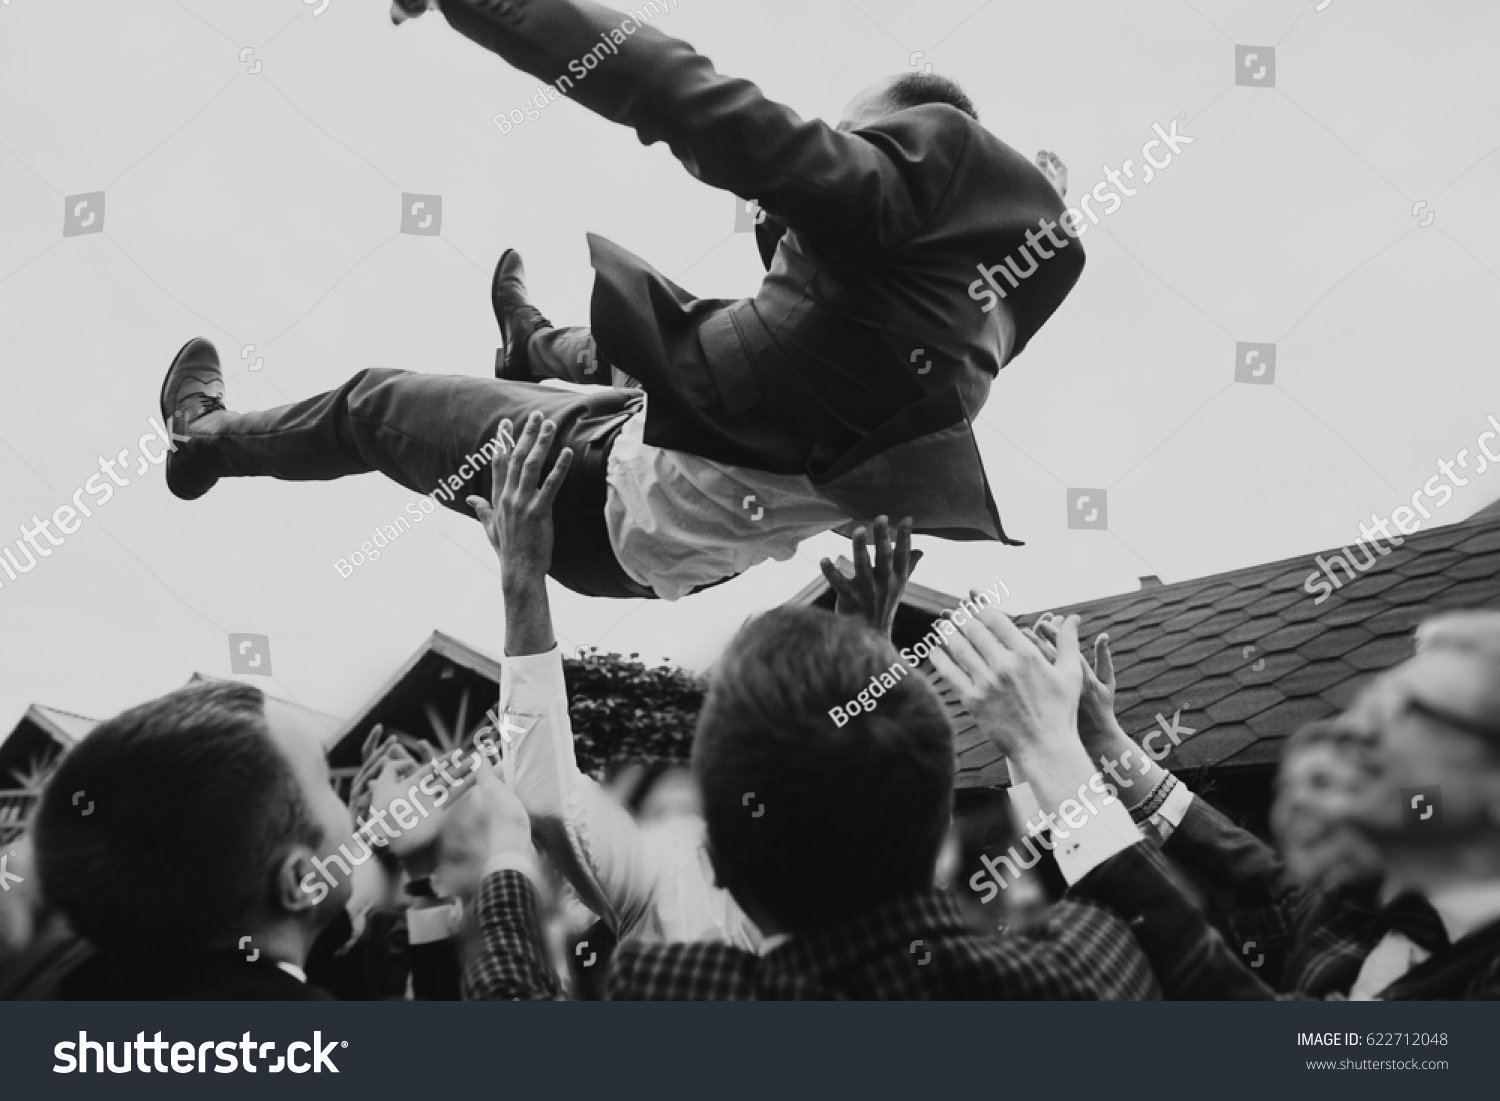 men tossing up groom at stylish wedding reception. groomsmen having fun and throwing up in air. emotional funny moment, space for text. joyful friends. black white photo #622712048